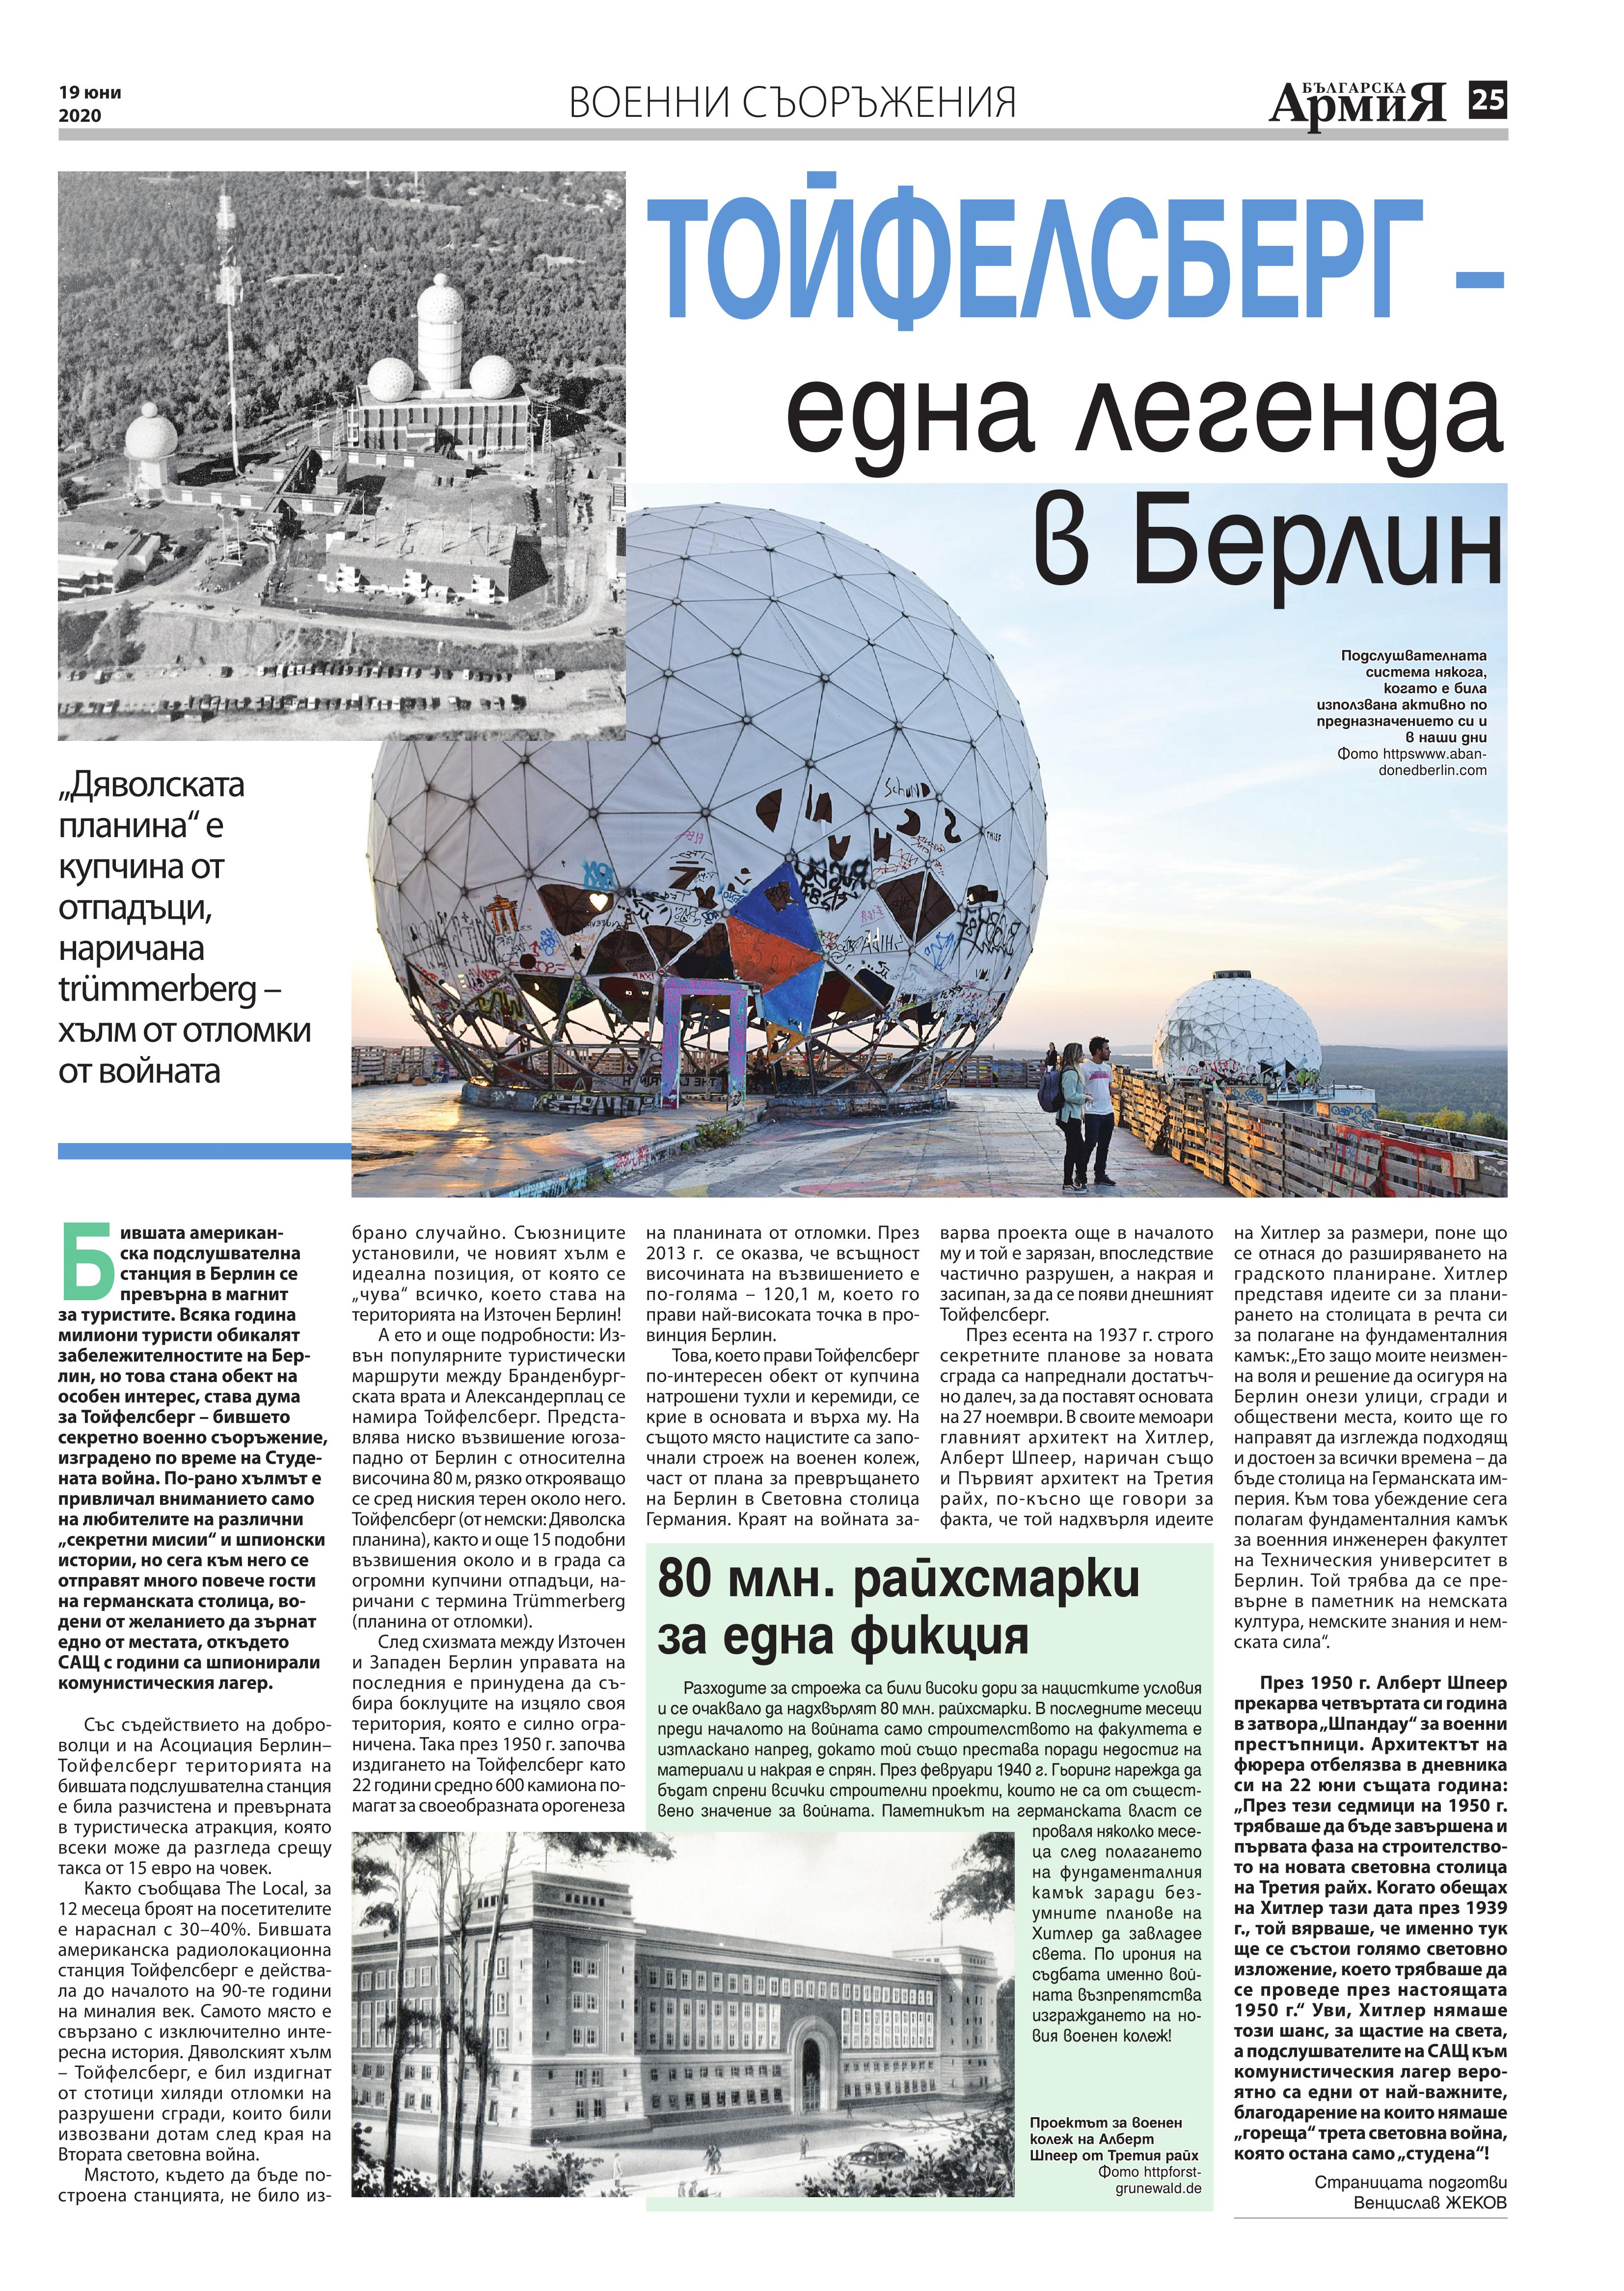 https://armymedia.bg/wp-content/uploads/2015/06/25.page1_-115.jpg